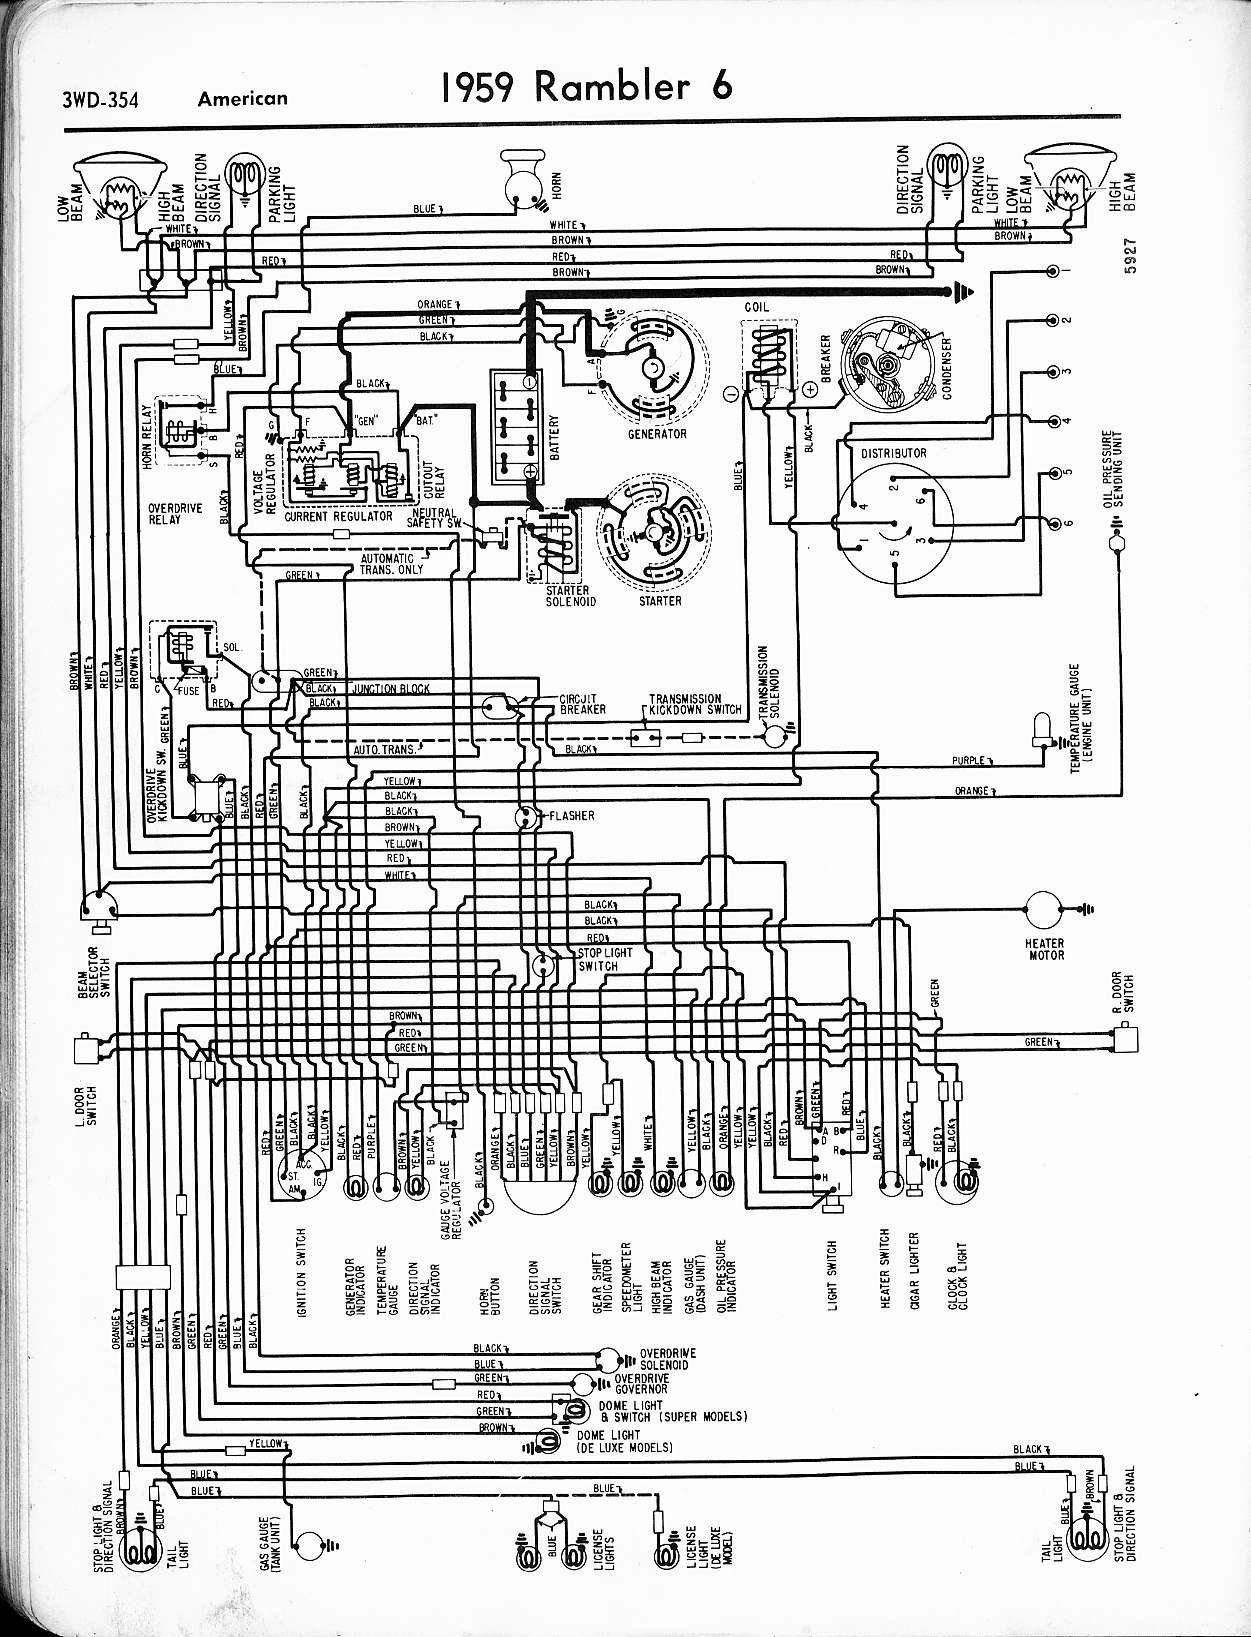 American Autowire Diagrams Wiring Library 67 Camaro Diagram Rambler Car Manual Project 1959 6